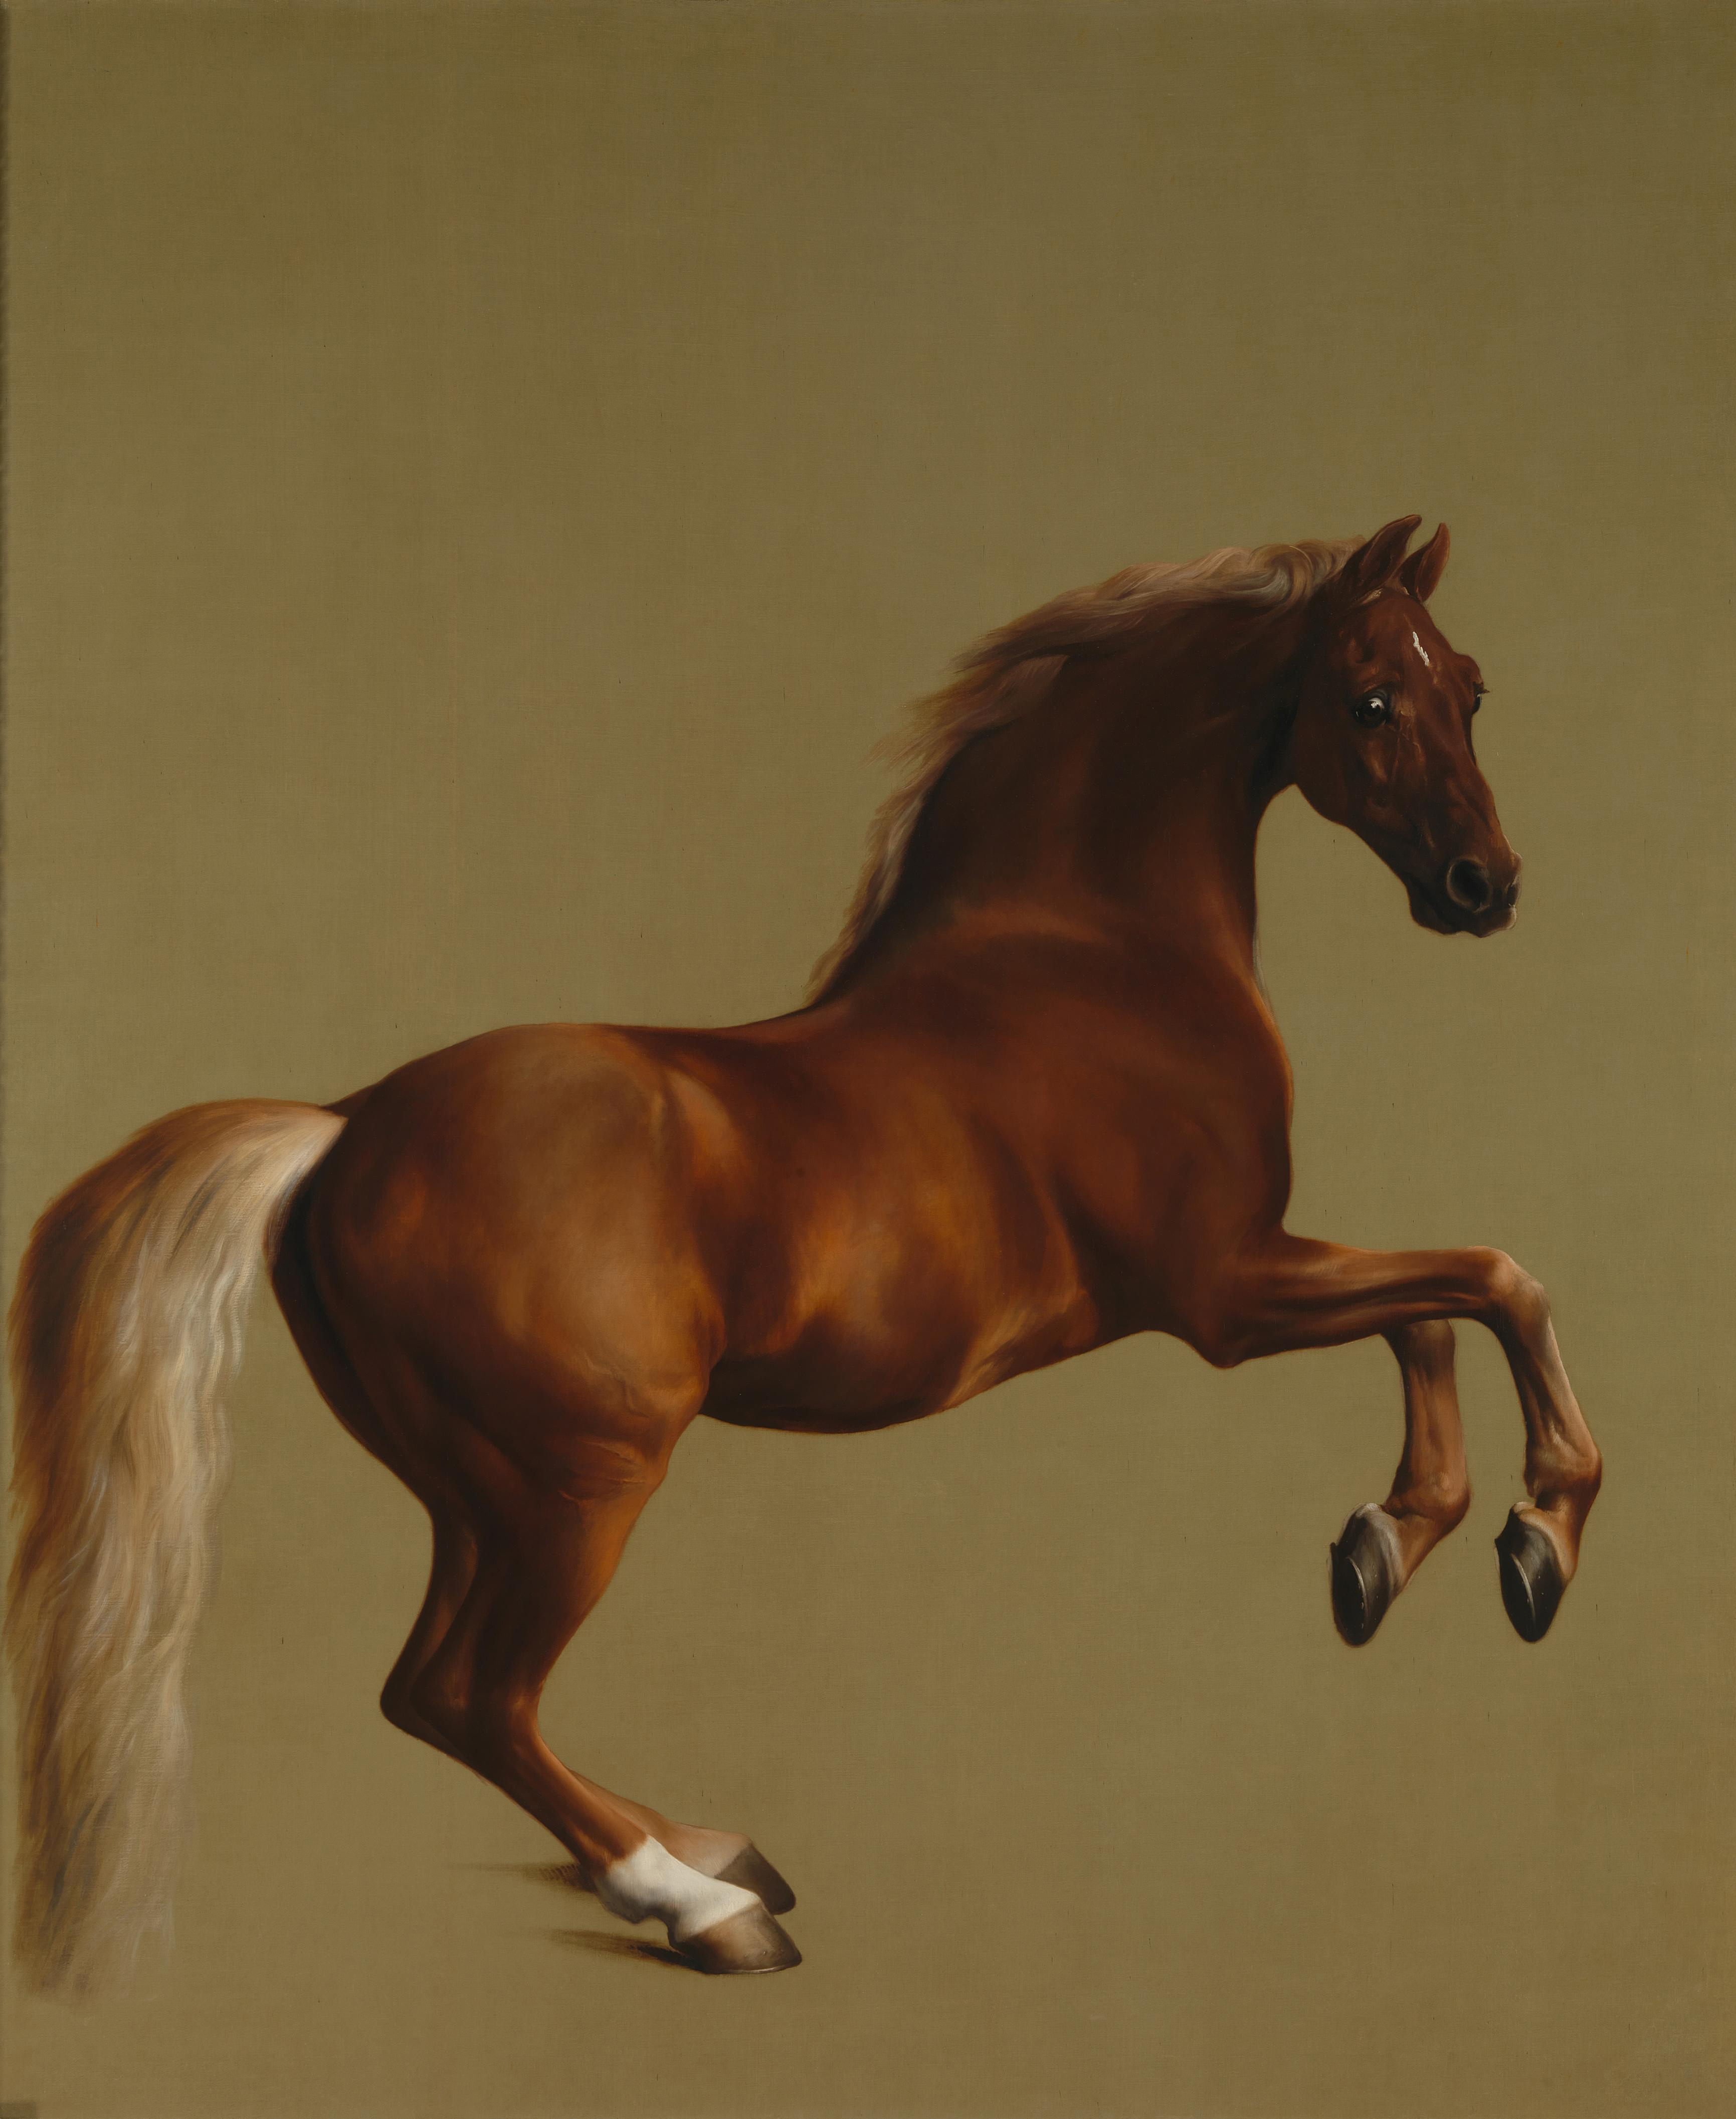 http://upload.wikimedia.org/wikipedia/commons/4/48/Whistlejacket_by_George_Stubbs.jpg